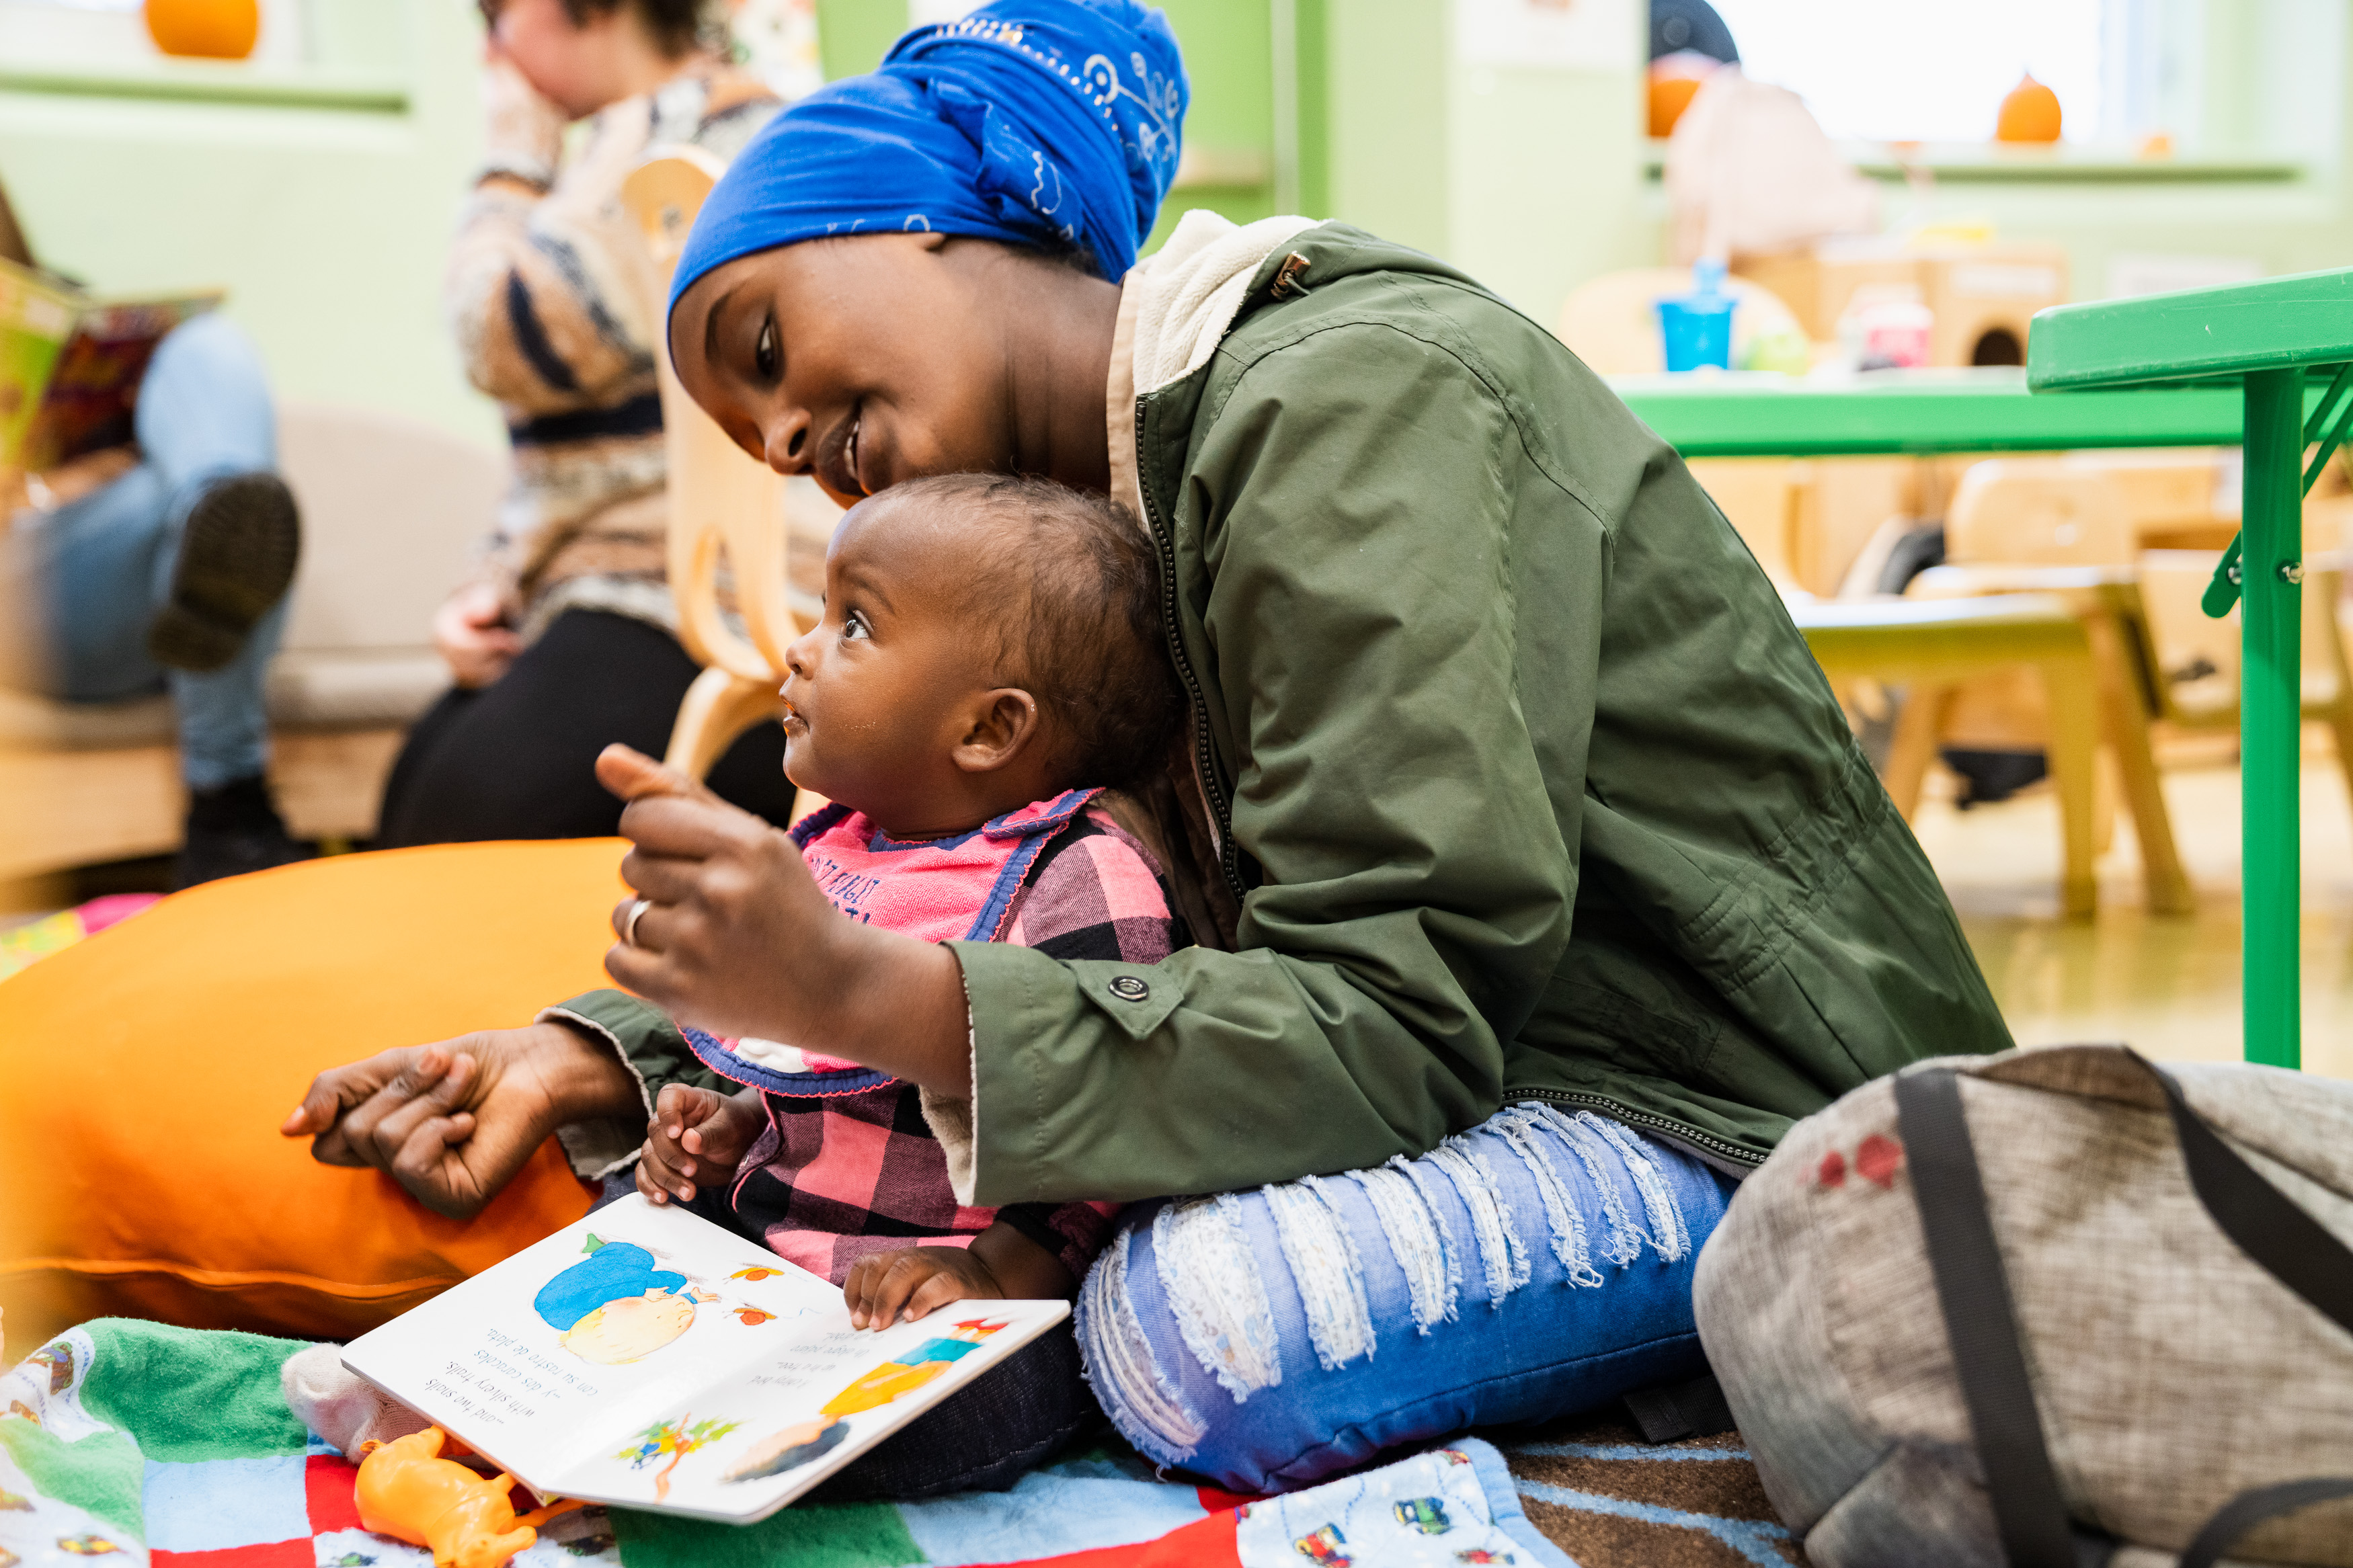 Photo of the UWCM Columbia Childcare facility: scene of a mother and child with a book on the floor reading together